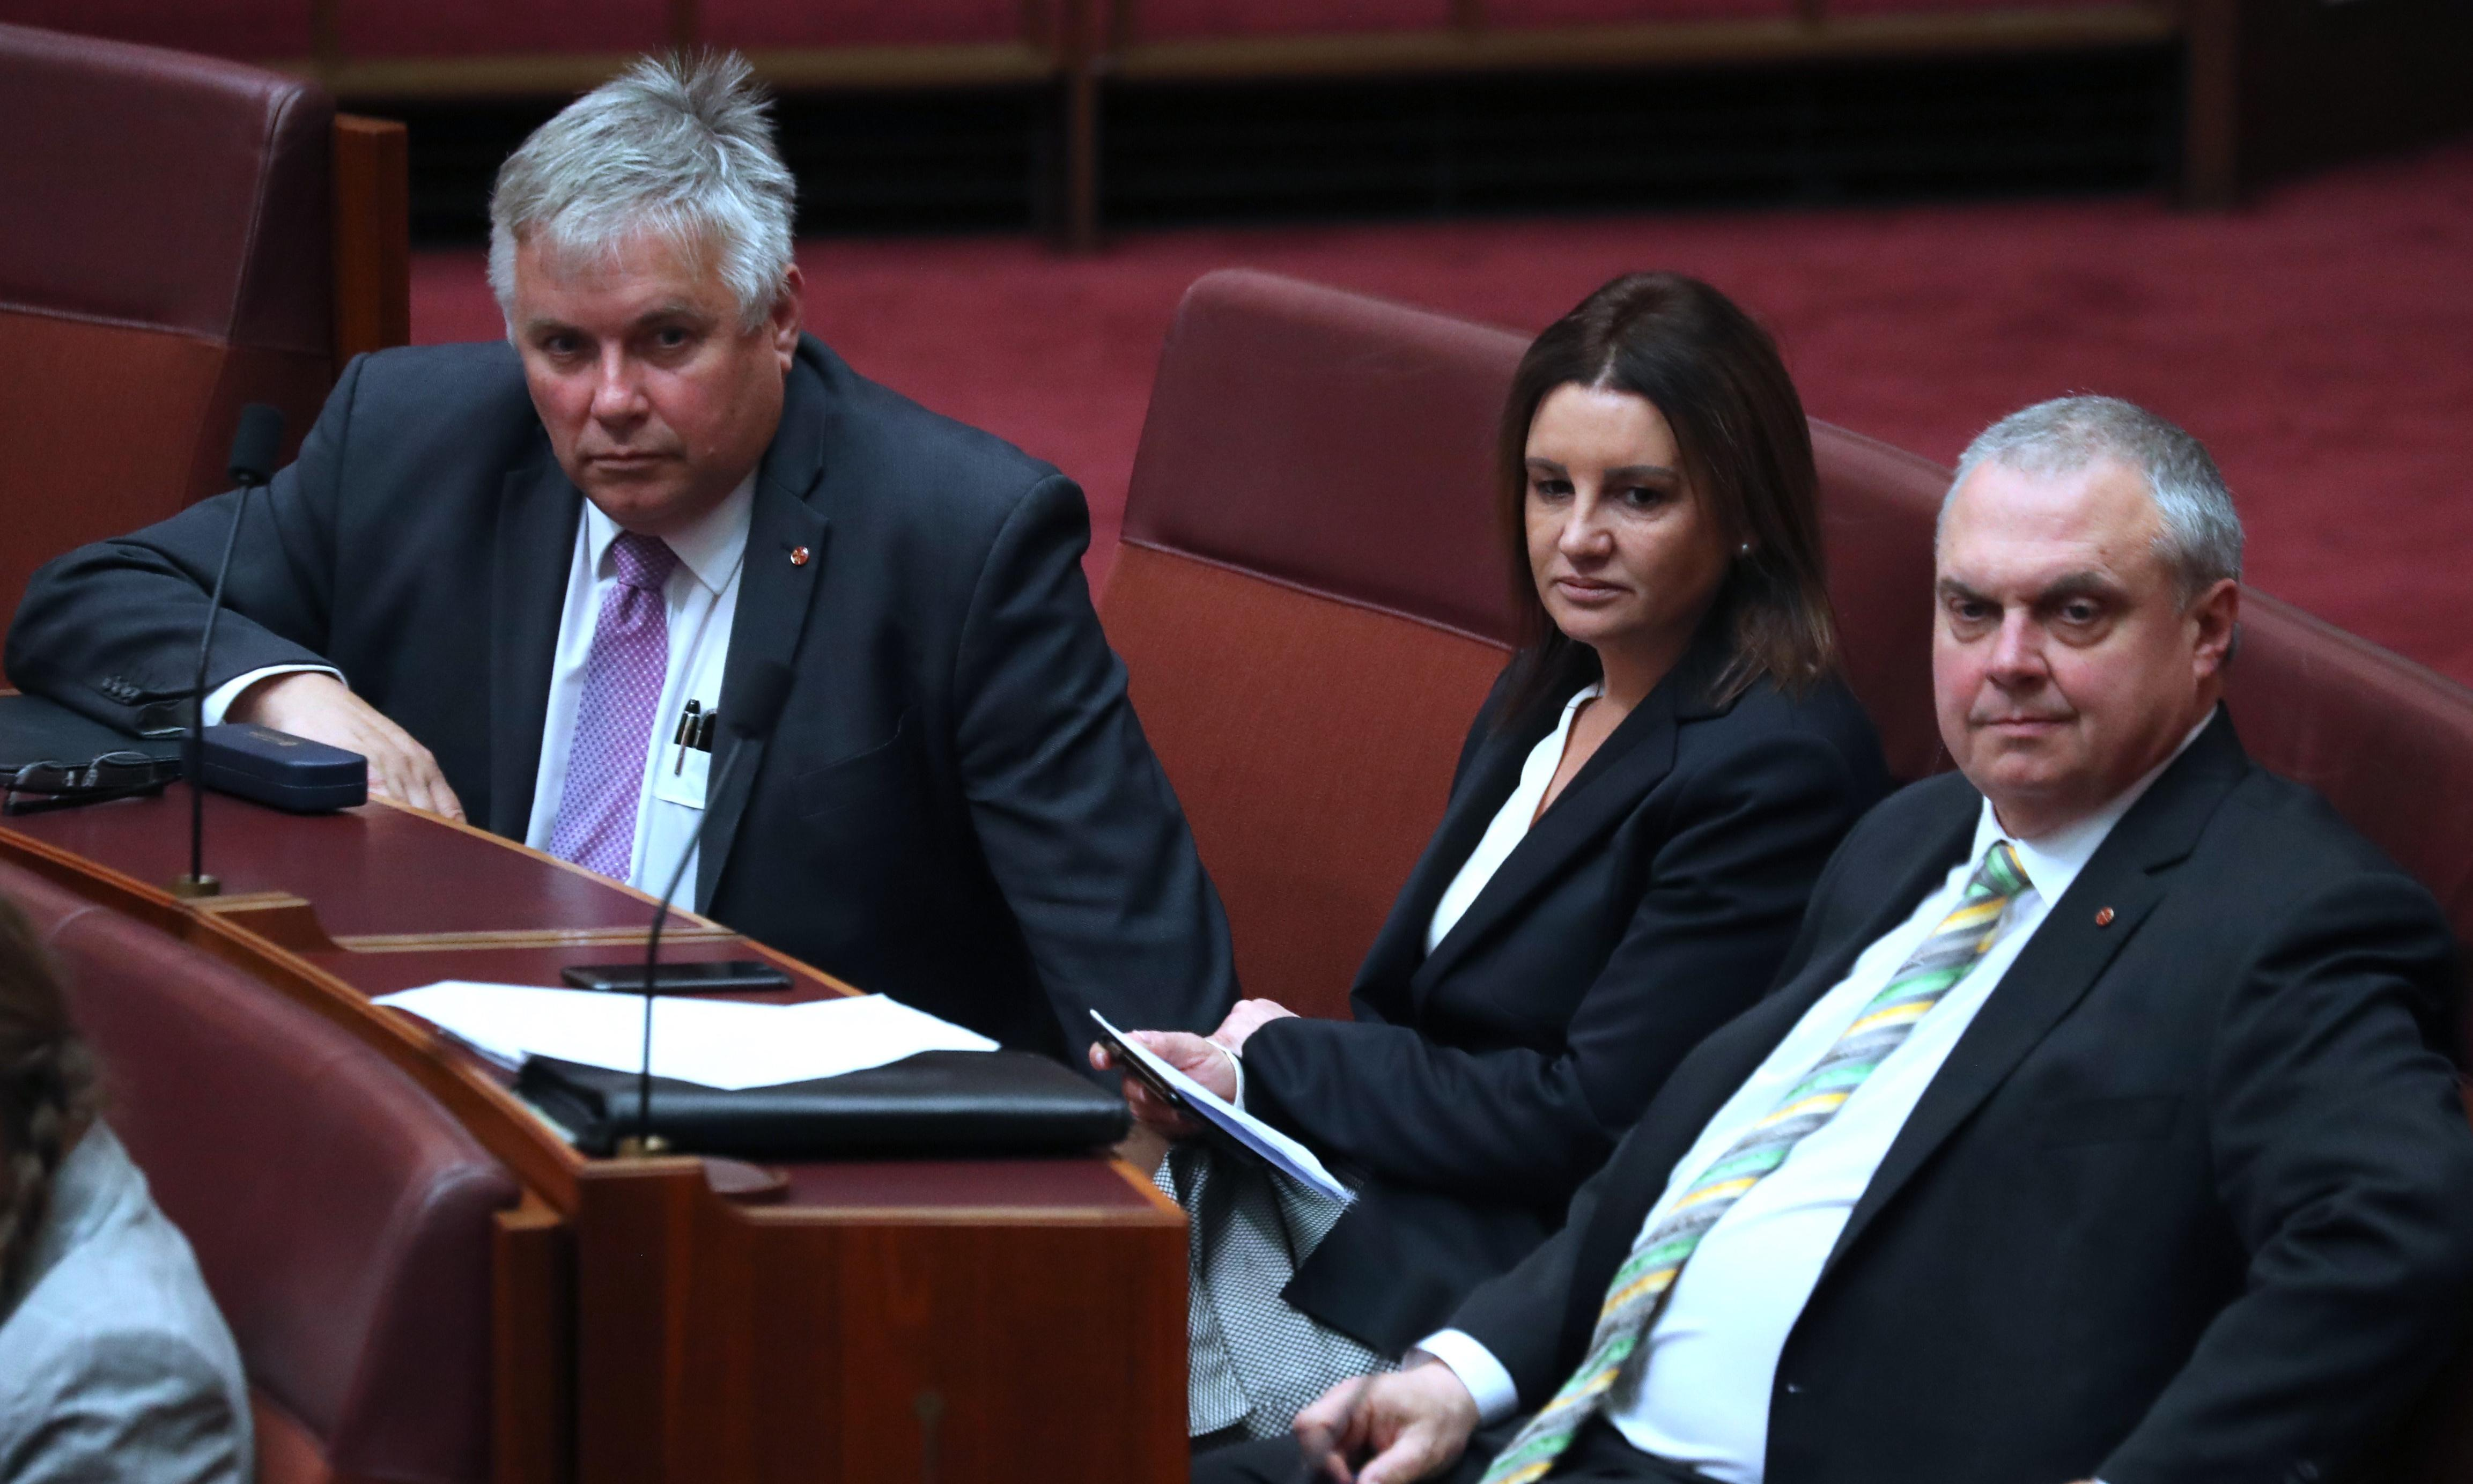 Jacqui Lambie and Rex Patrick accuse John Setka of intimidation over vote on union bill